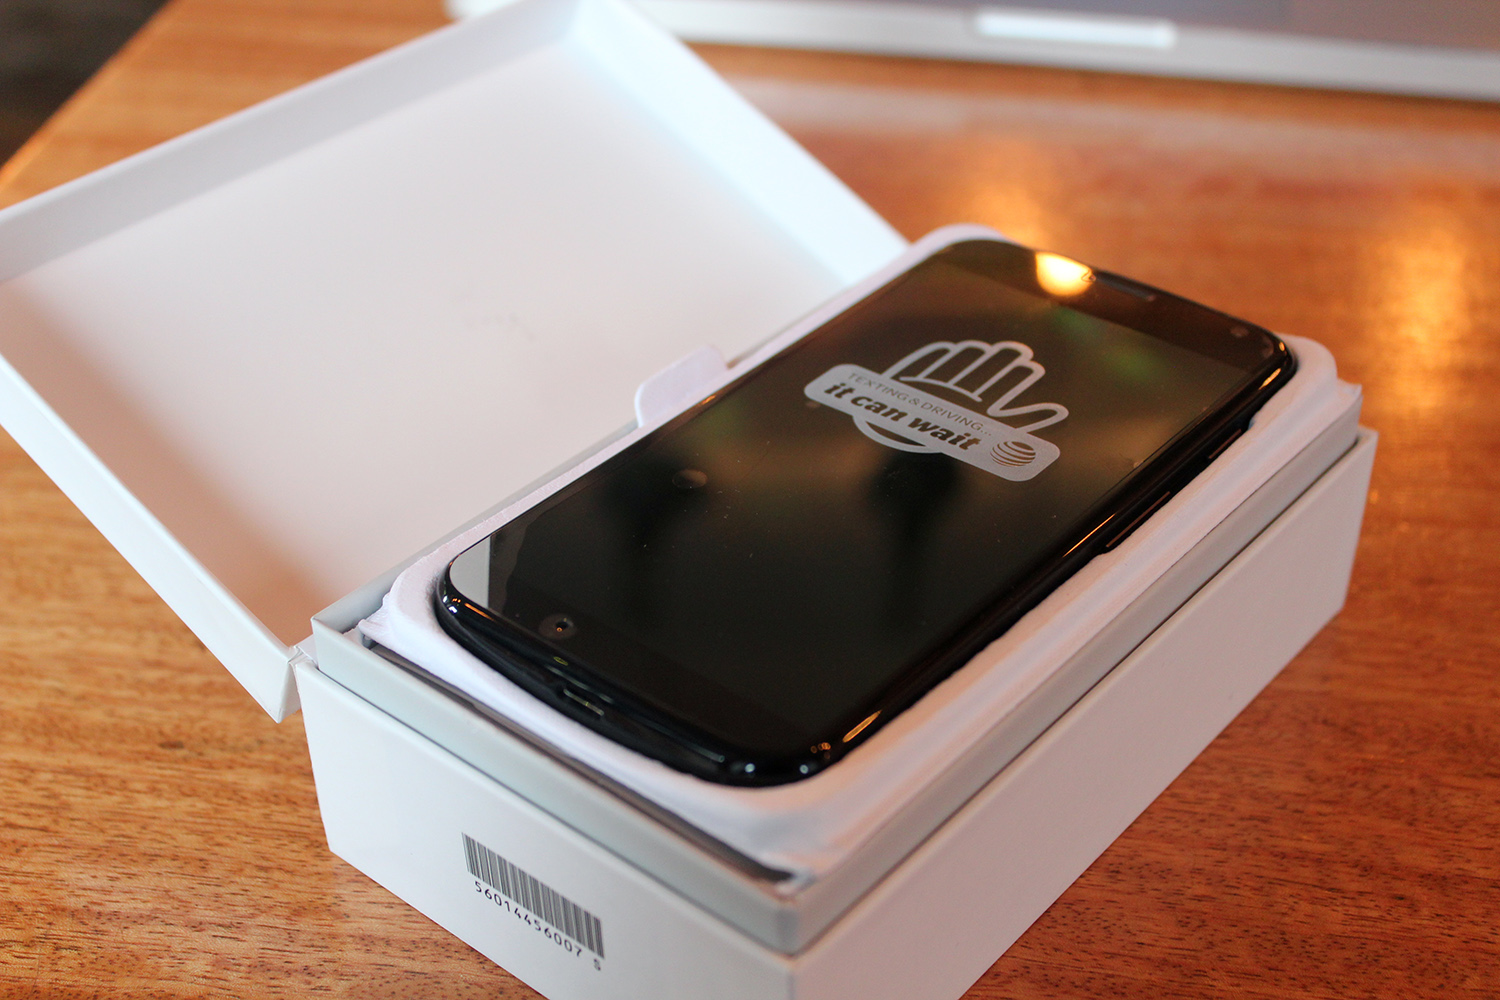 IMG 3136 Hands on with the Moto X: You wont lust after it, but its a solid smartphone